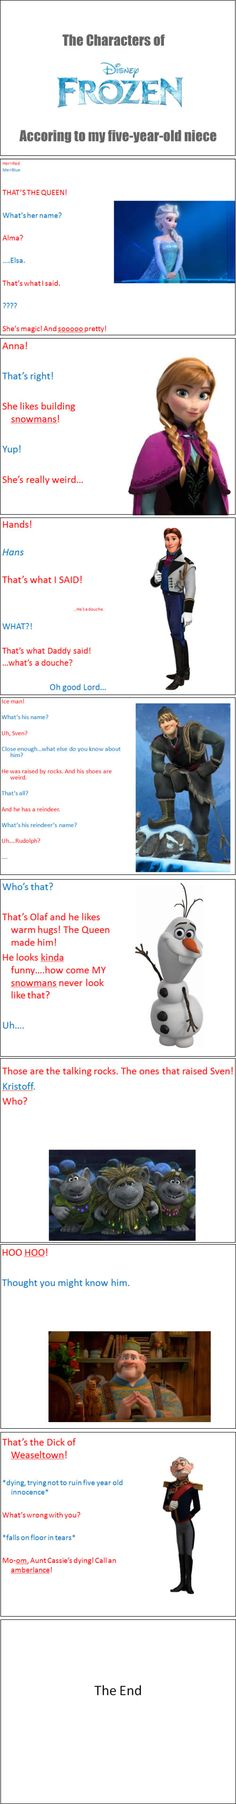 The characters of Frozen according to a five-year-old girl.